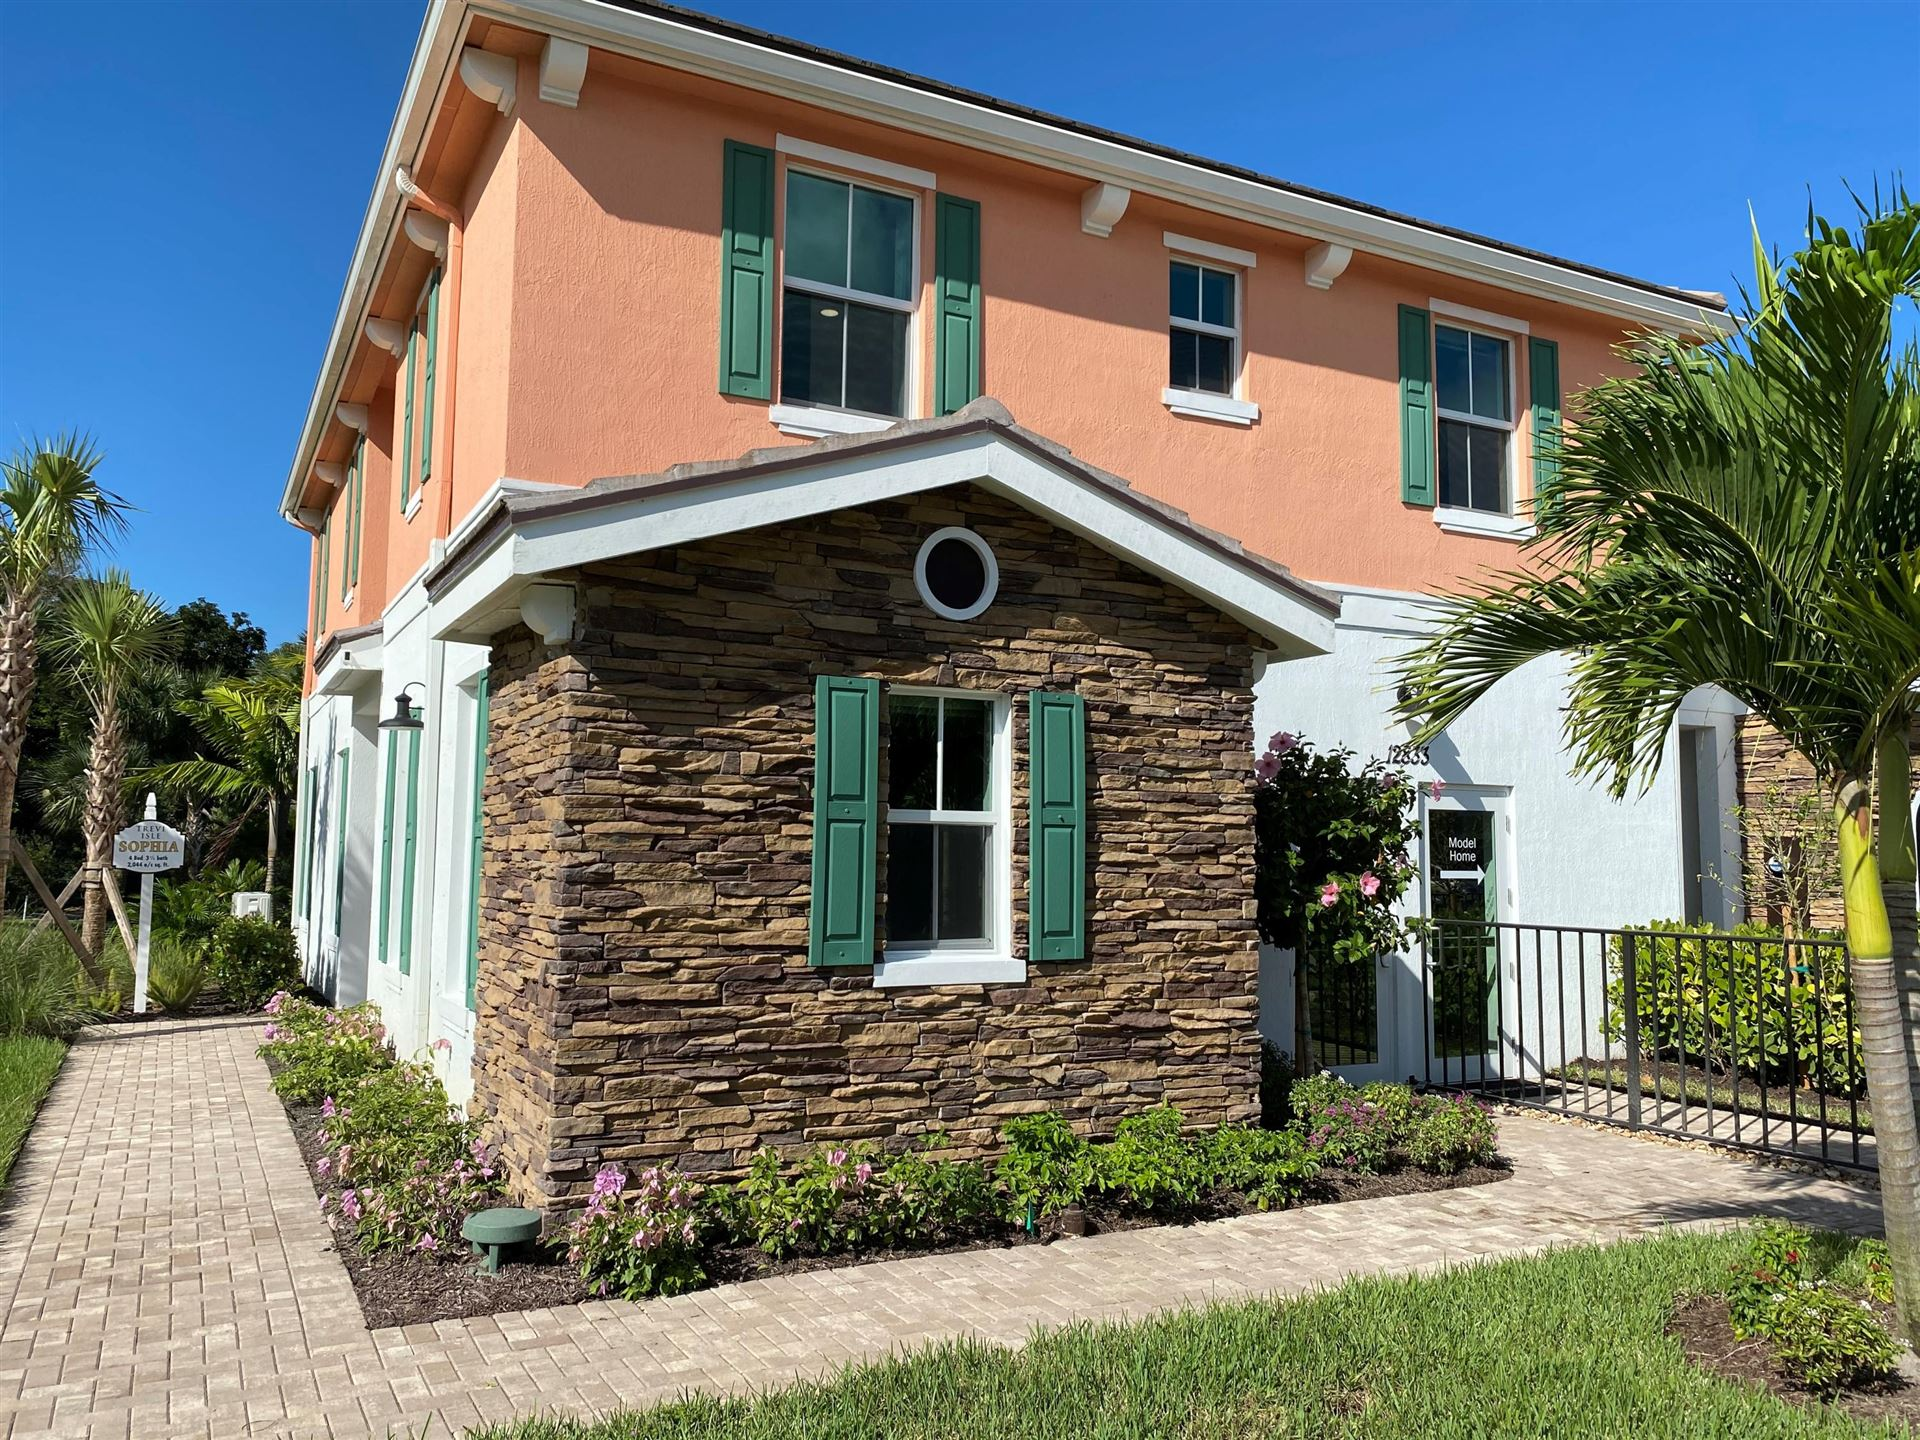 Photo of 12946 Trevi Isle Drive #46, Palm Beach Gardens, FL 33418 (MLS # RX-10683162)